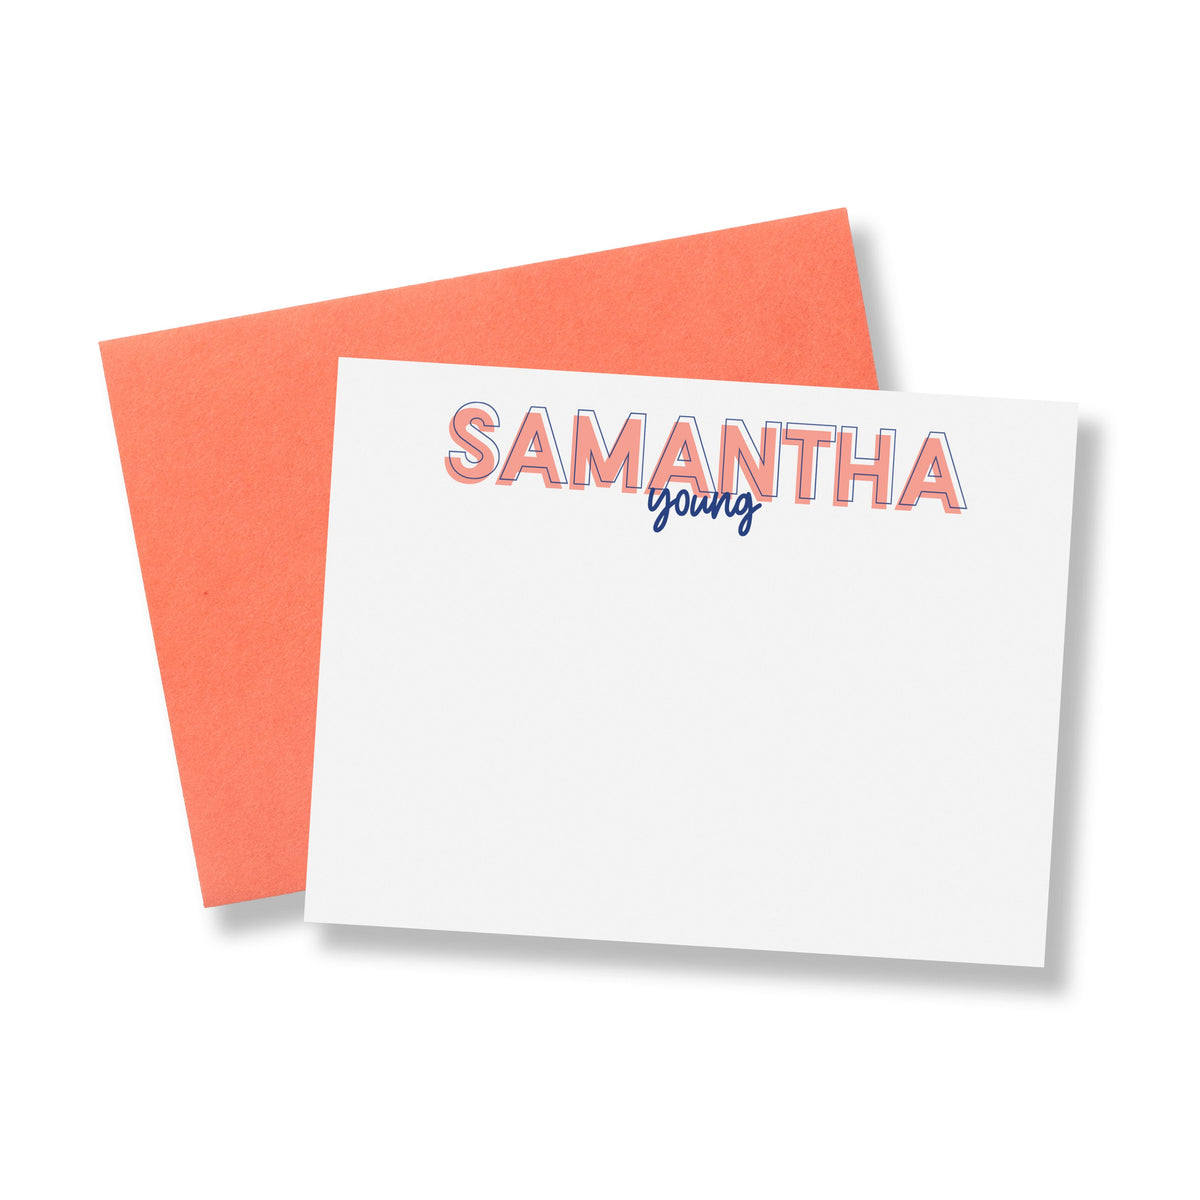 Outline Block and Script Lettered Personalized Stationery